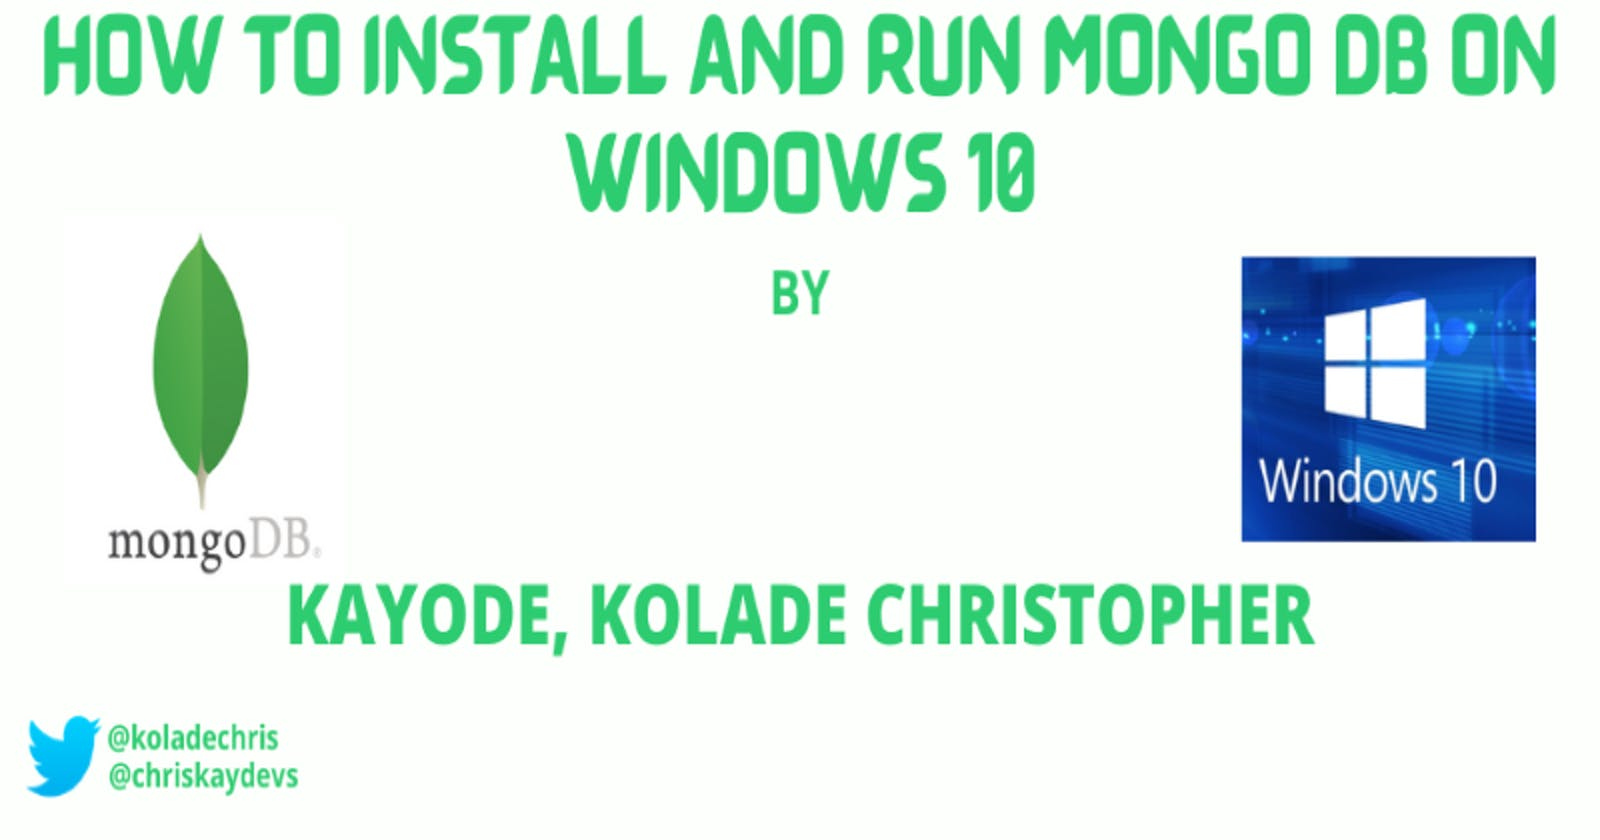 How To Install And Run Mongo Db On Windows 10